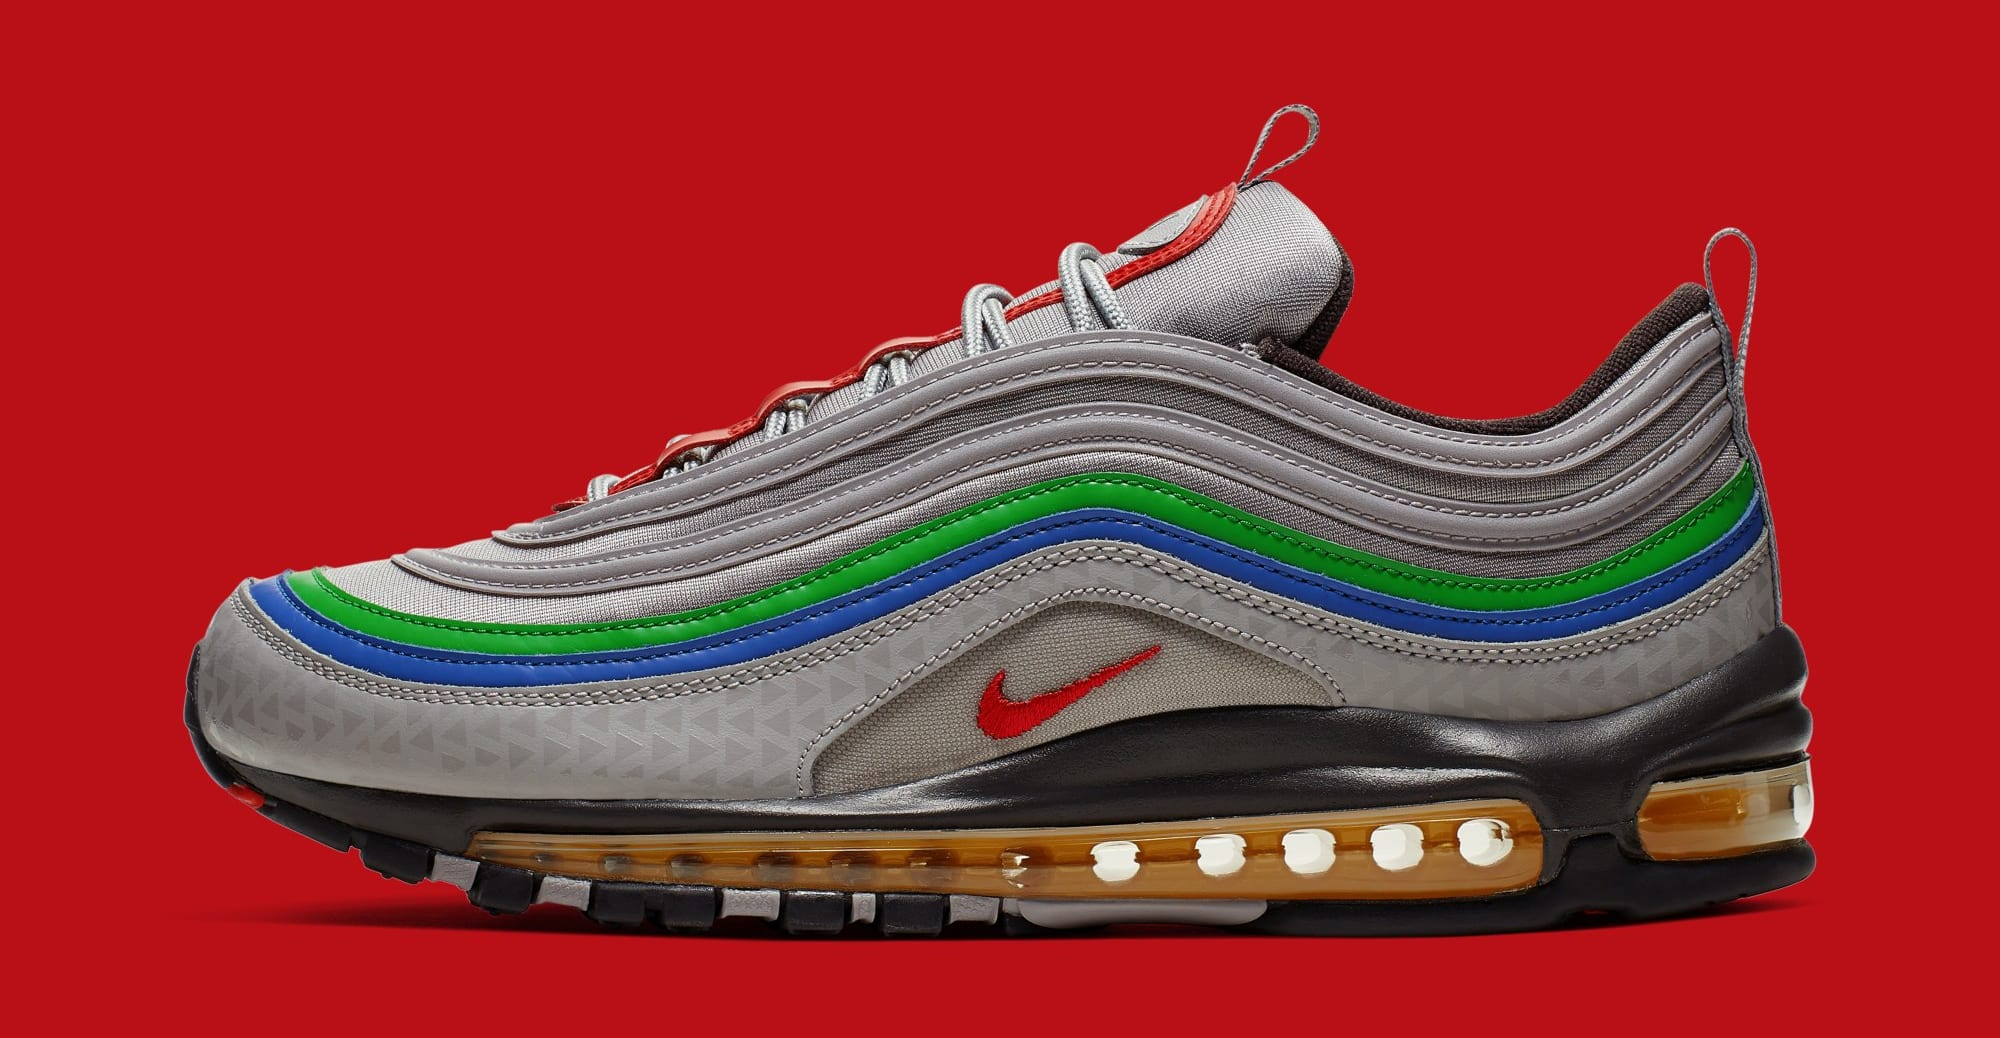 These Nostalgic Air Max 97s Look Like a Nintendo 64